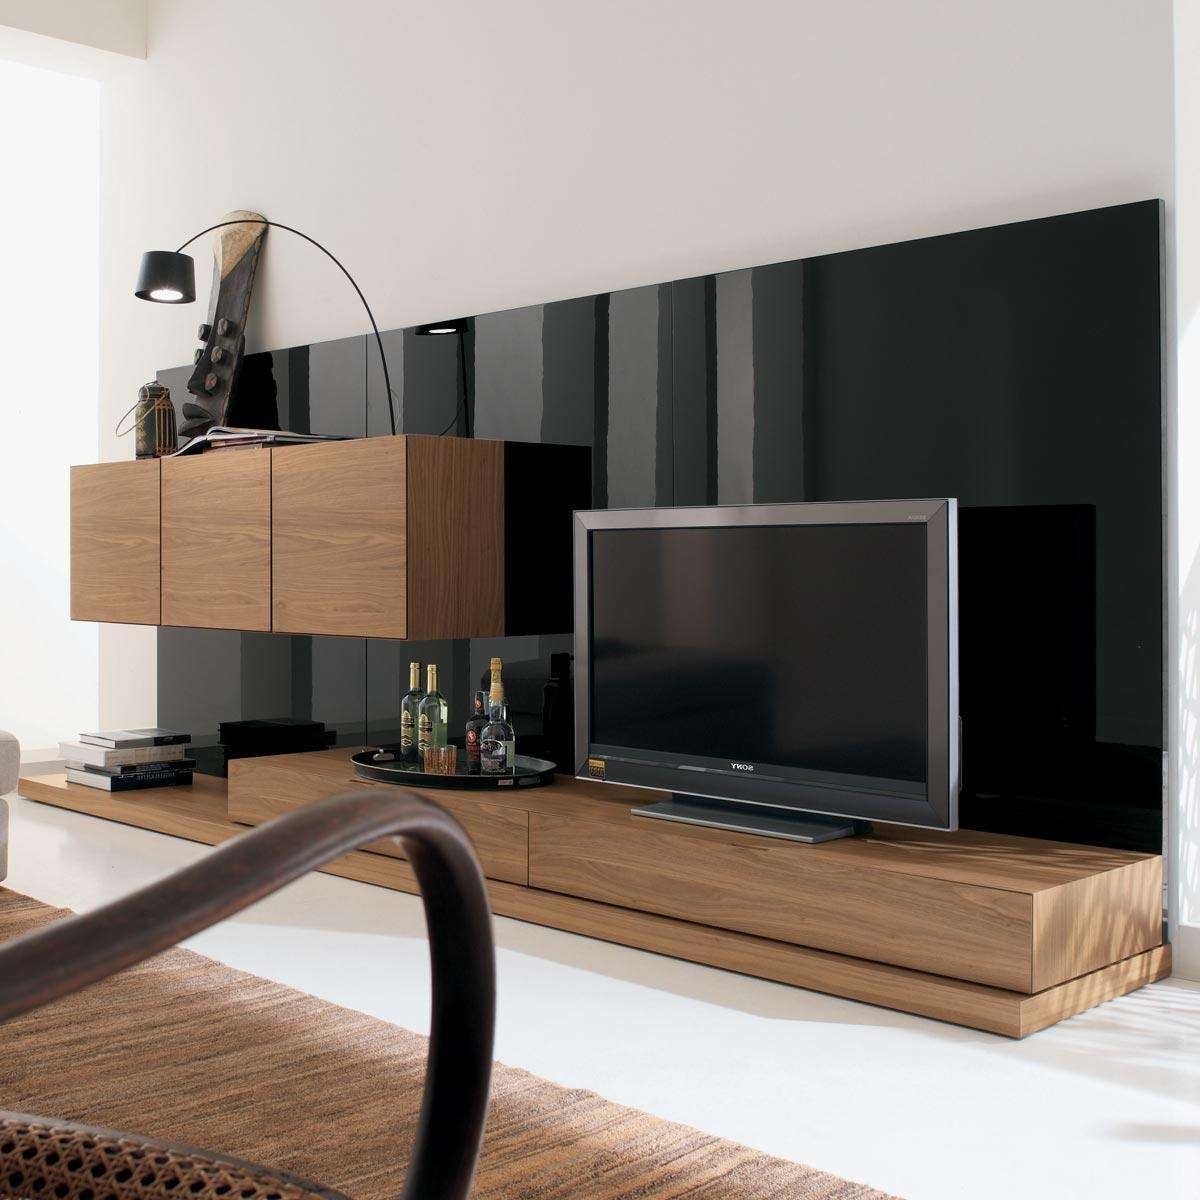 Modern Nature Wood Big Screen Tv Stand Wall Mounted Living Room Regarding Modern Style Tv Stands (View 13 of 15)